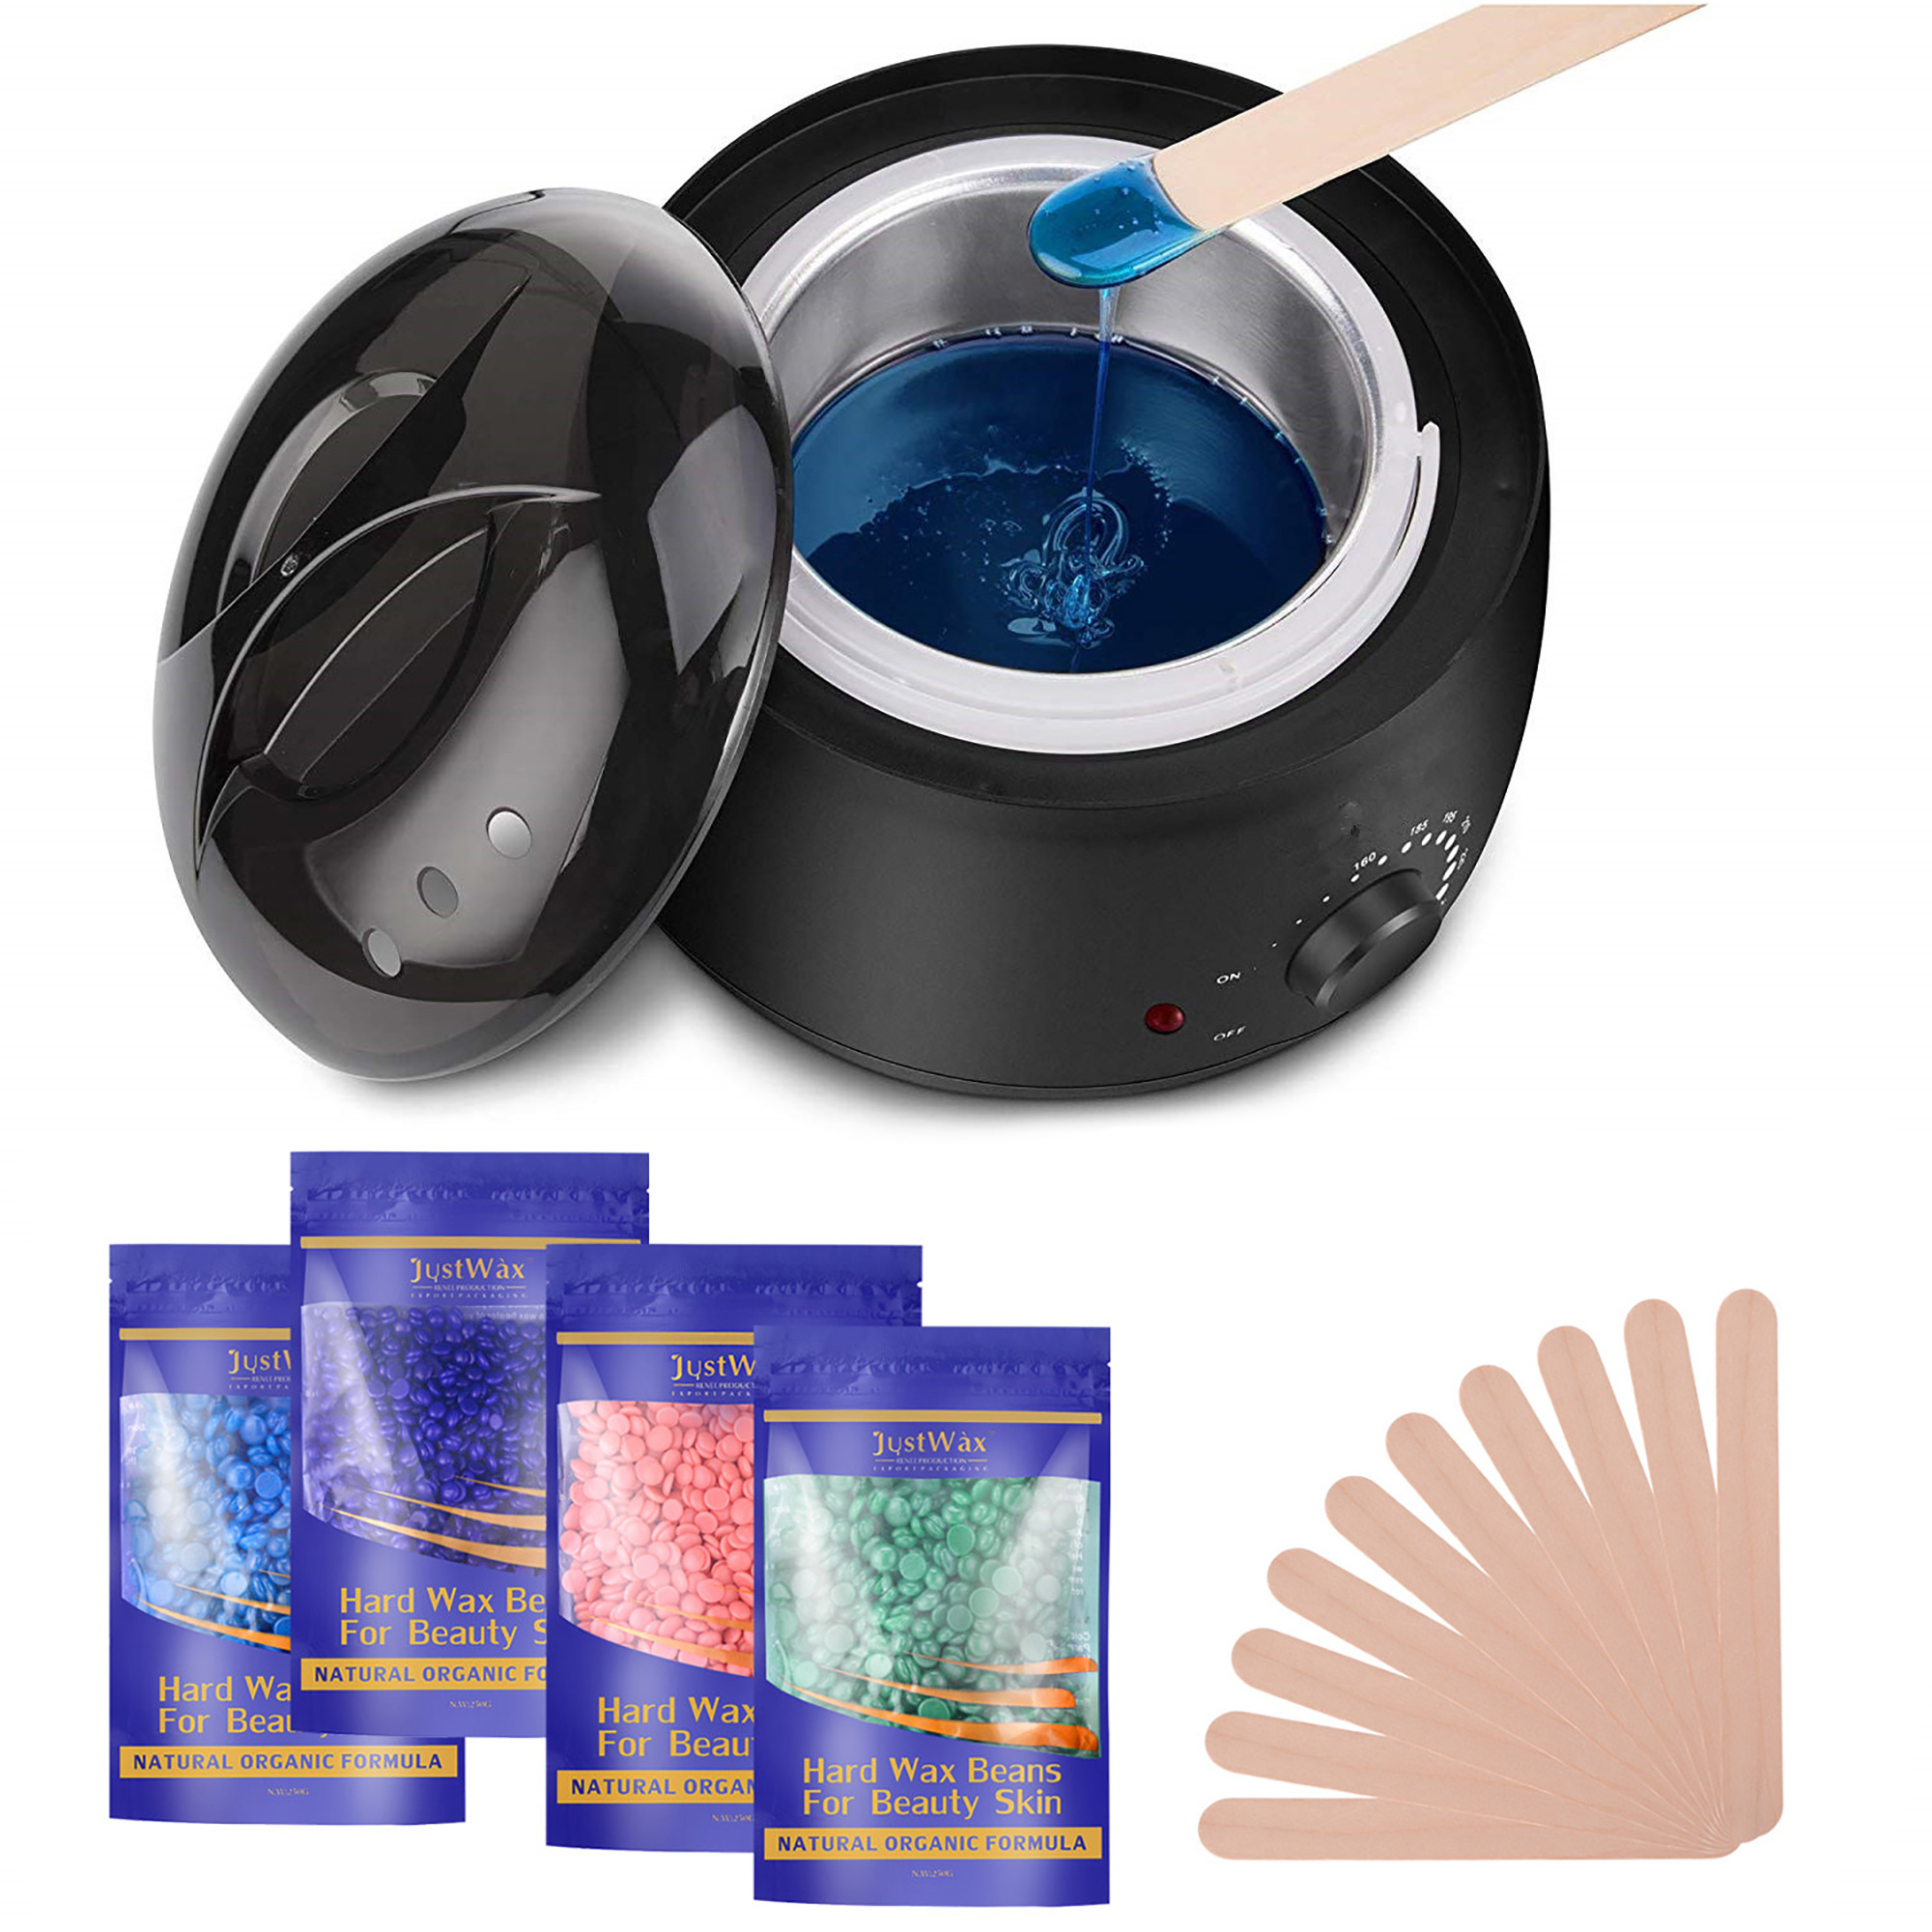 Image Stylish Electric Hair Removal Heater Hot Wax Warmer Set W 4